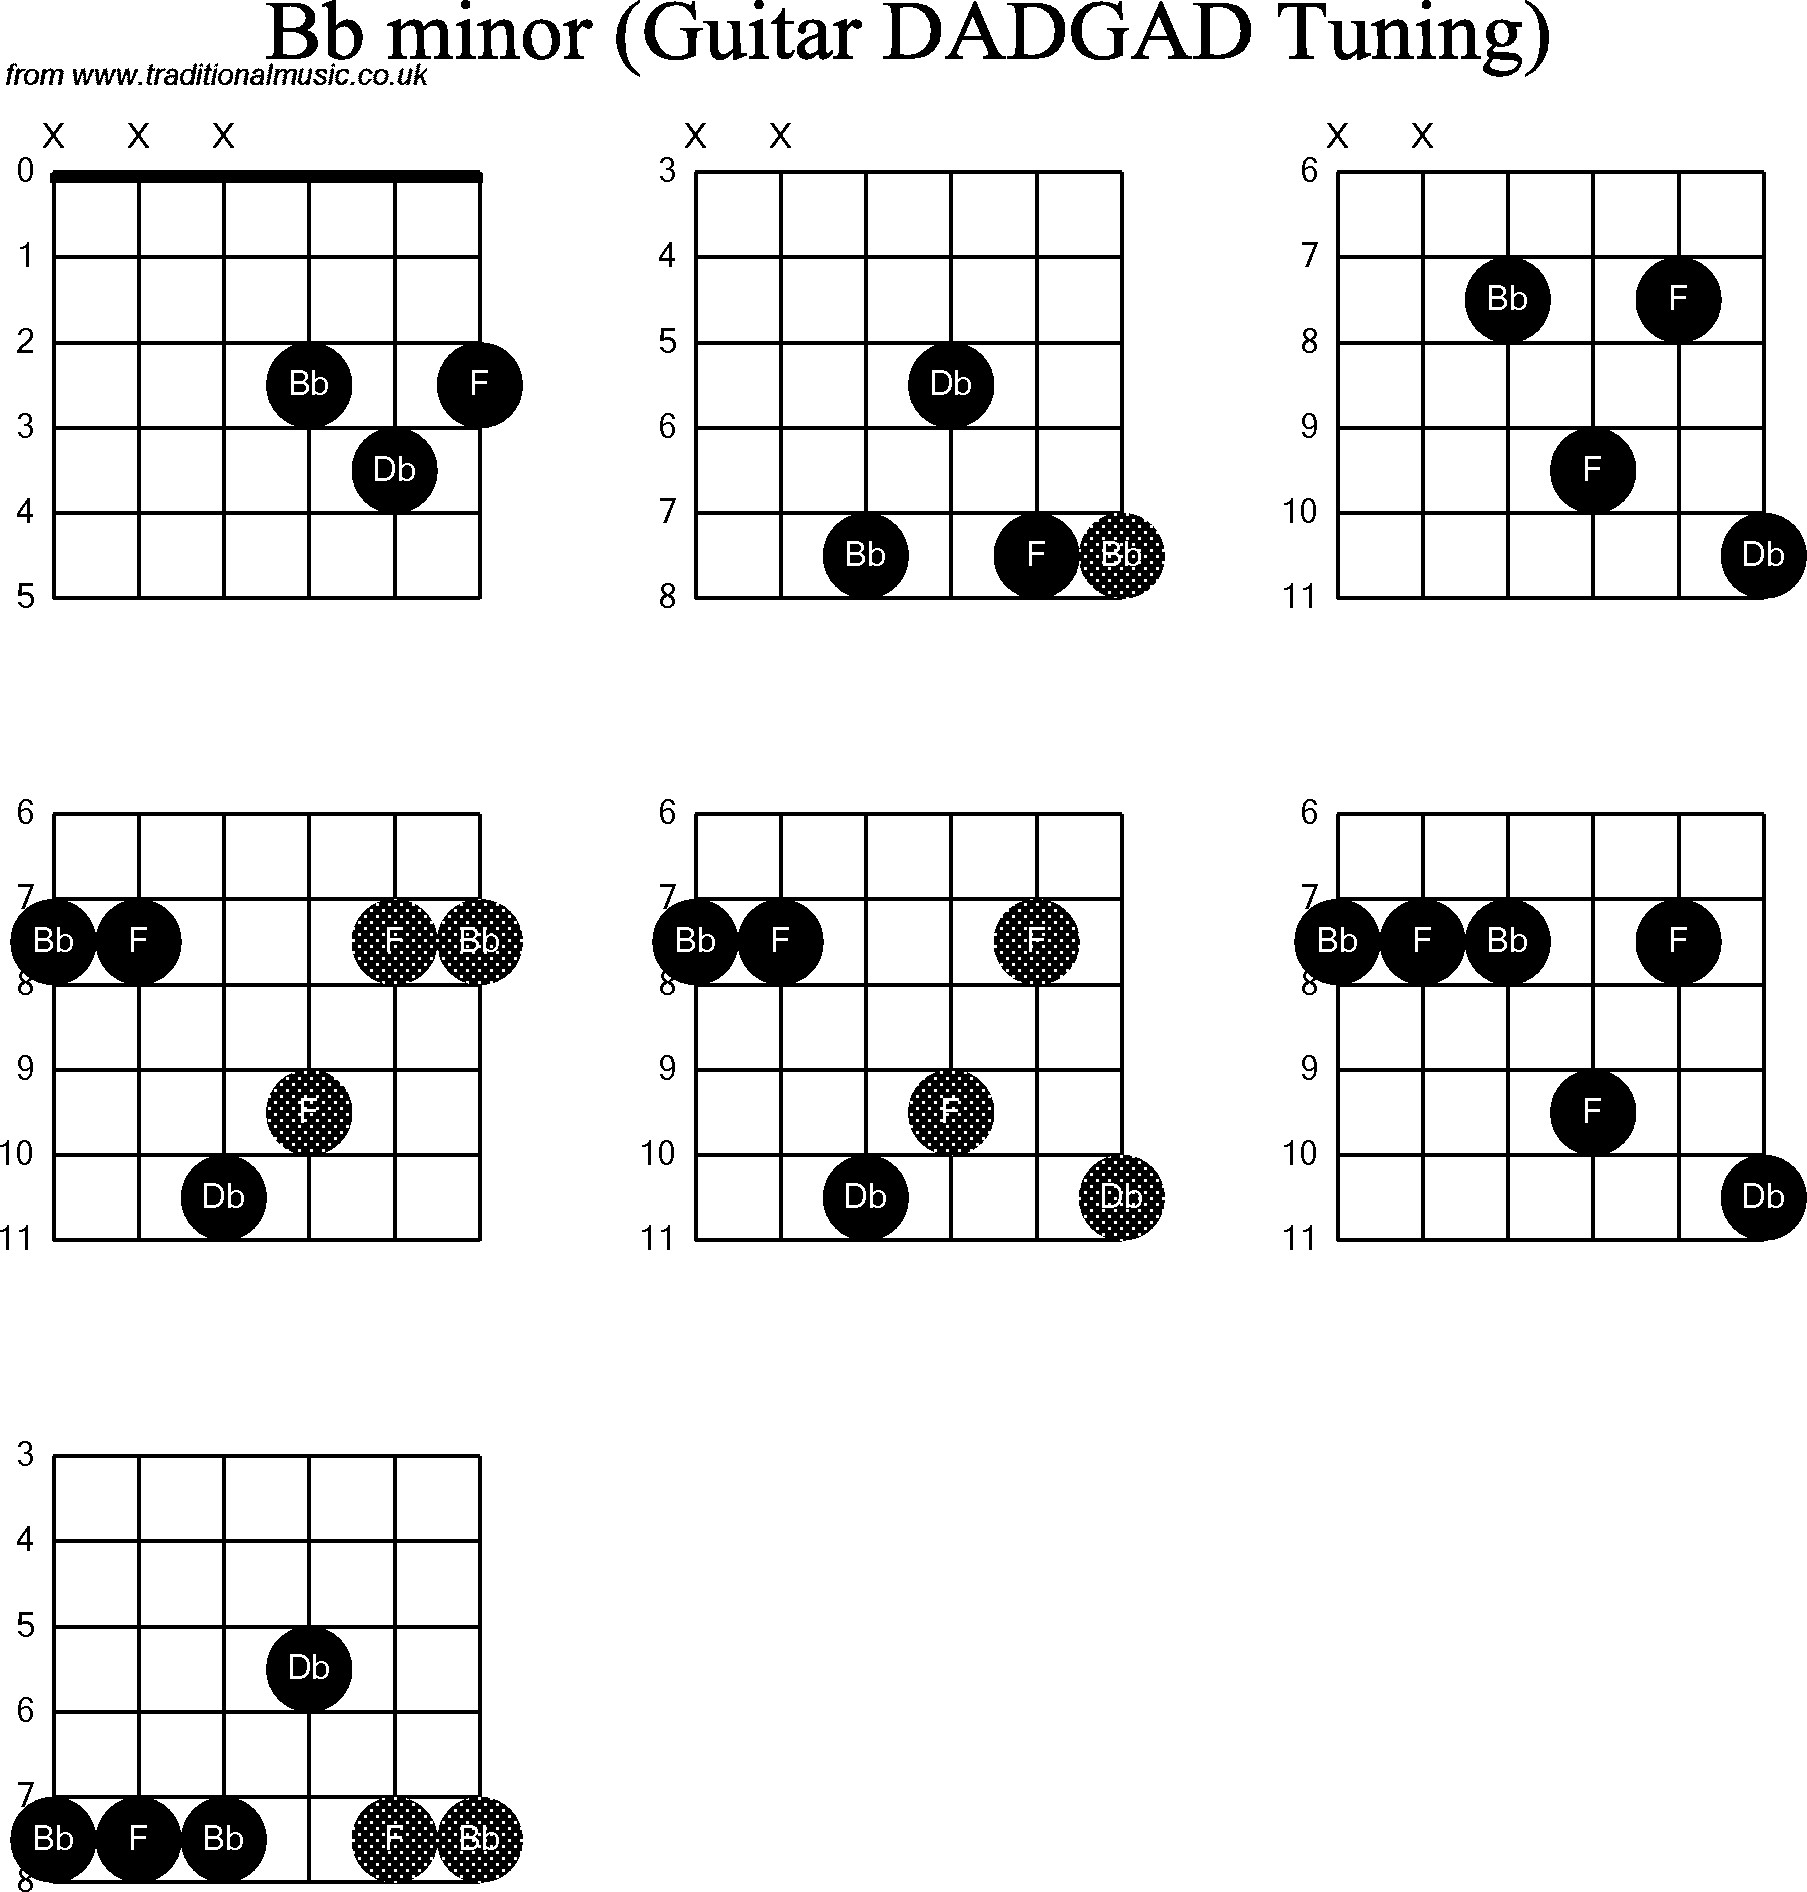 G Minor Chord Chord Diagrams For Dobro Bb Minor Wiring Diagrams Dash